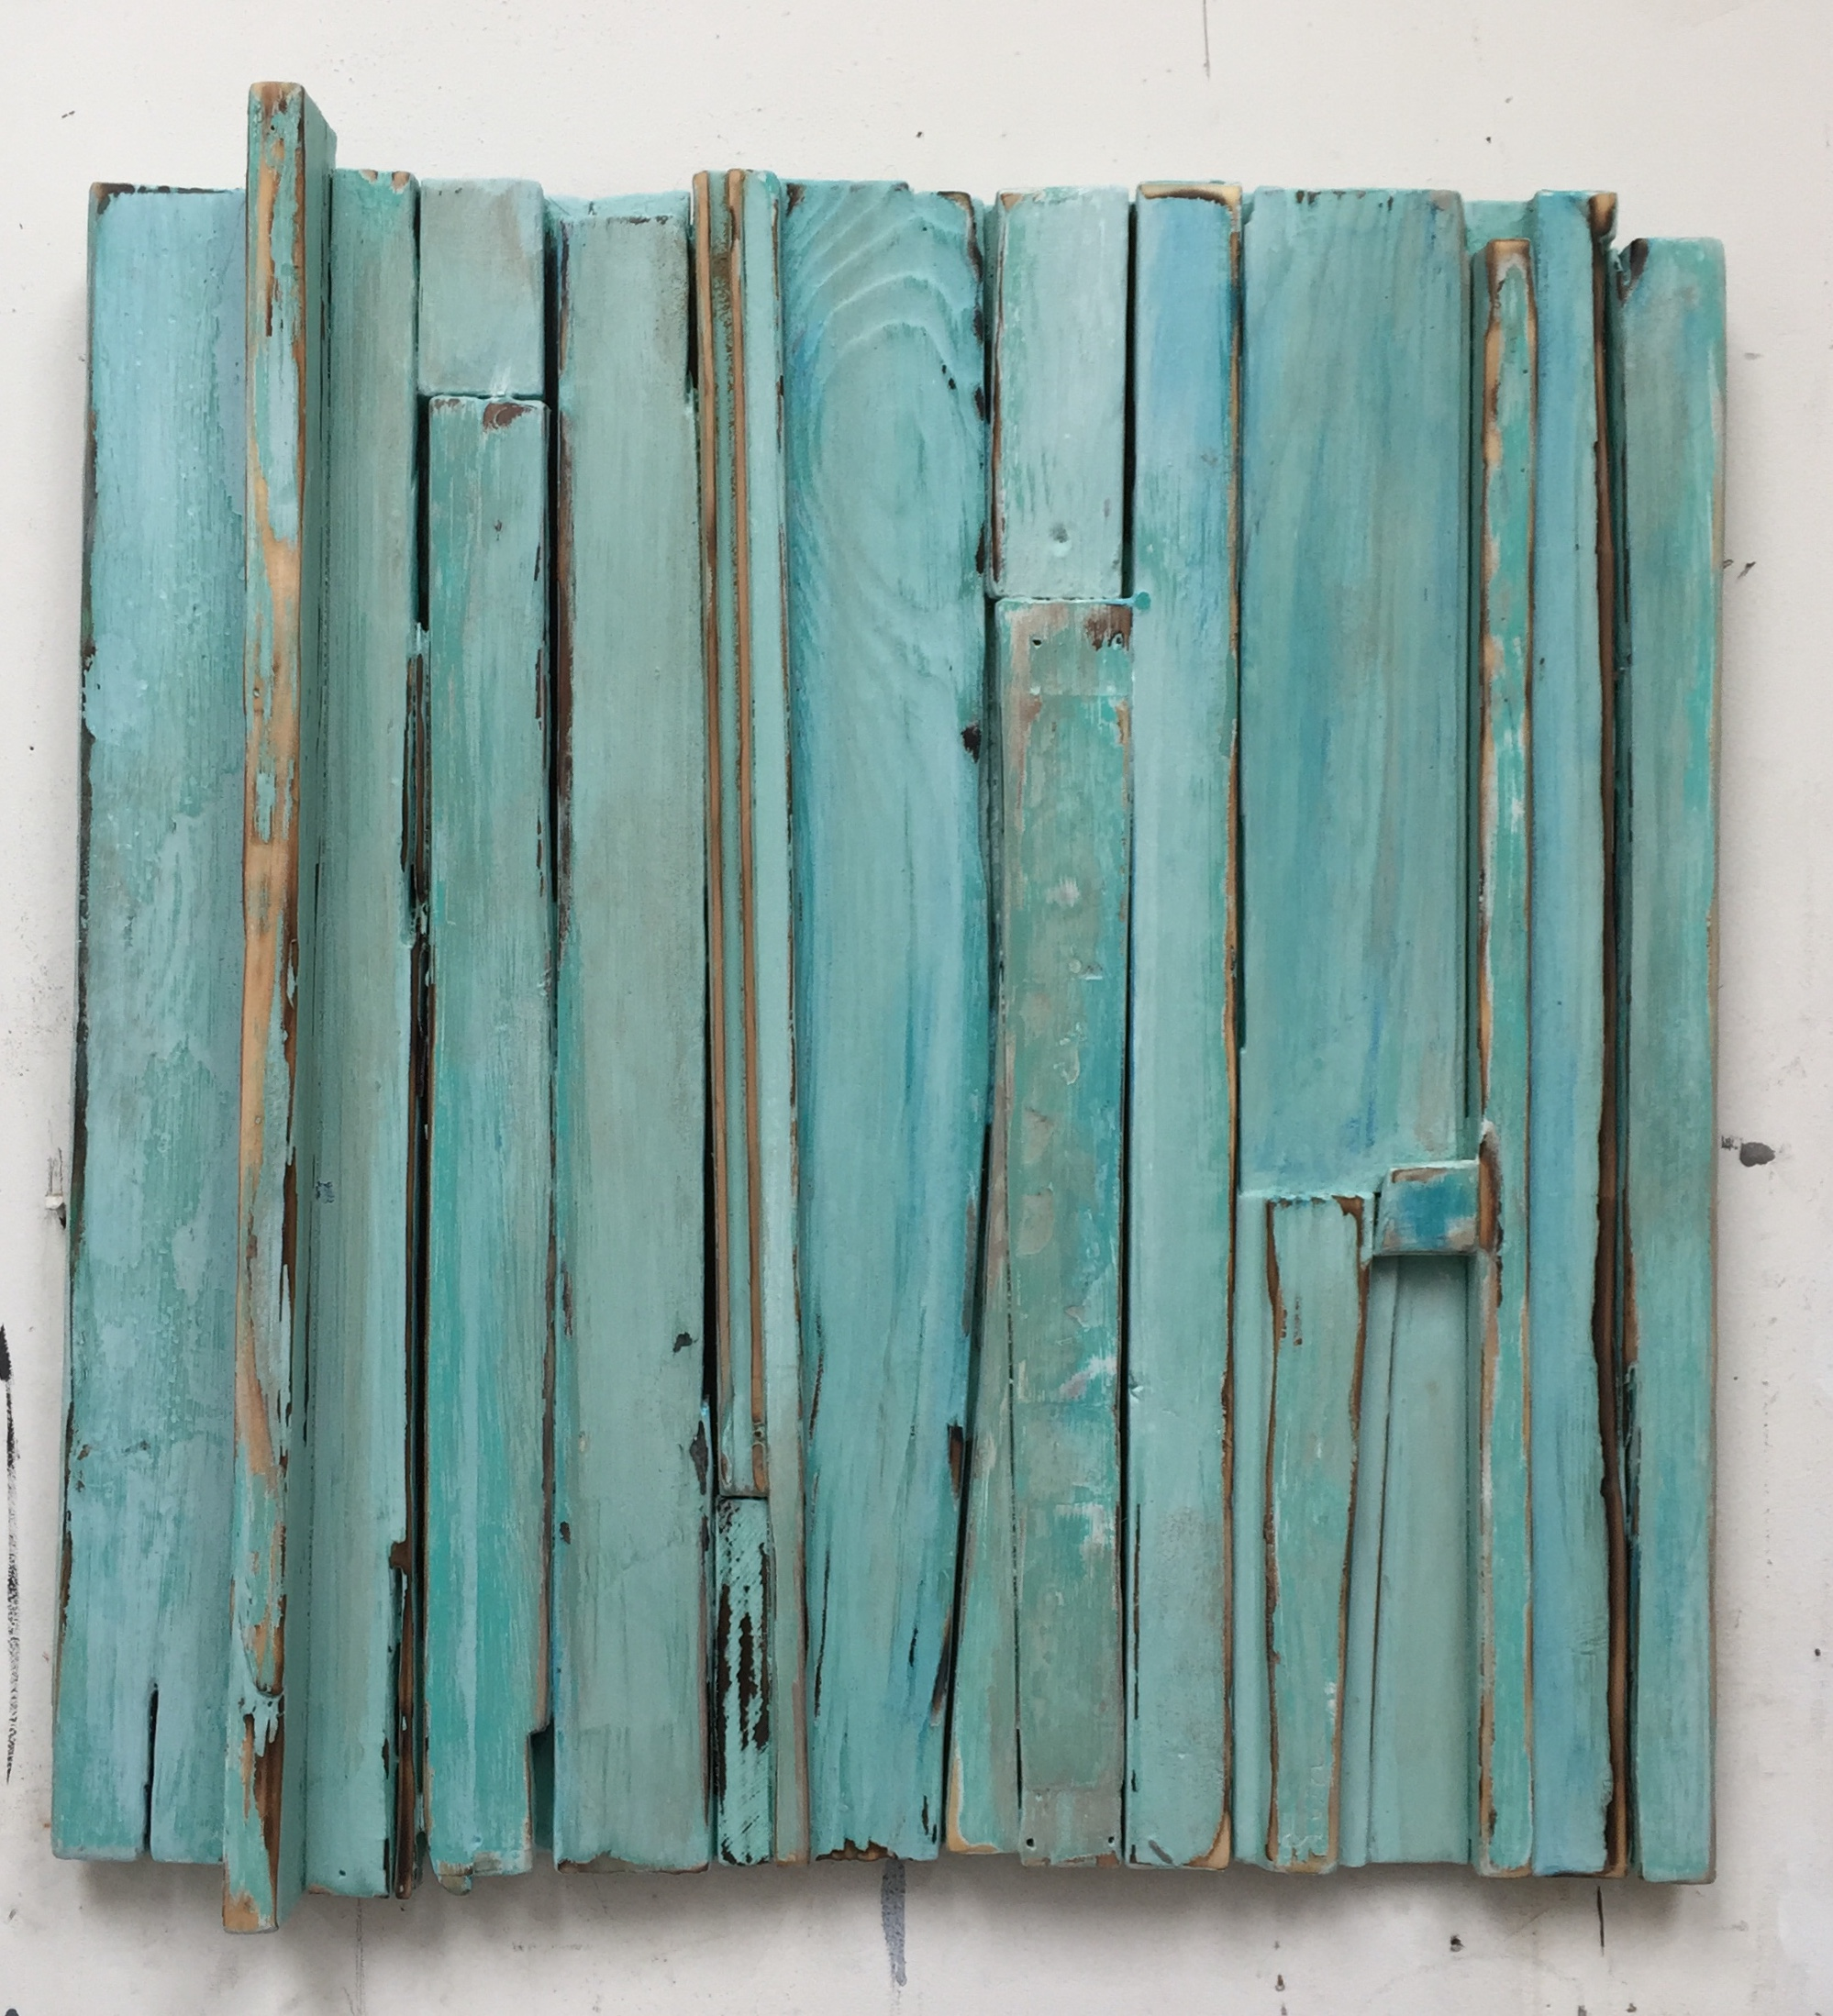 Weathered Turquoise, 2016, acrylic on layered wood, 25 x 23 in, $3,500